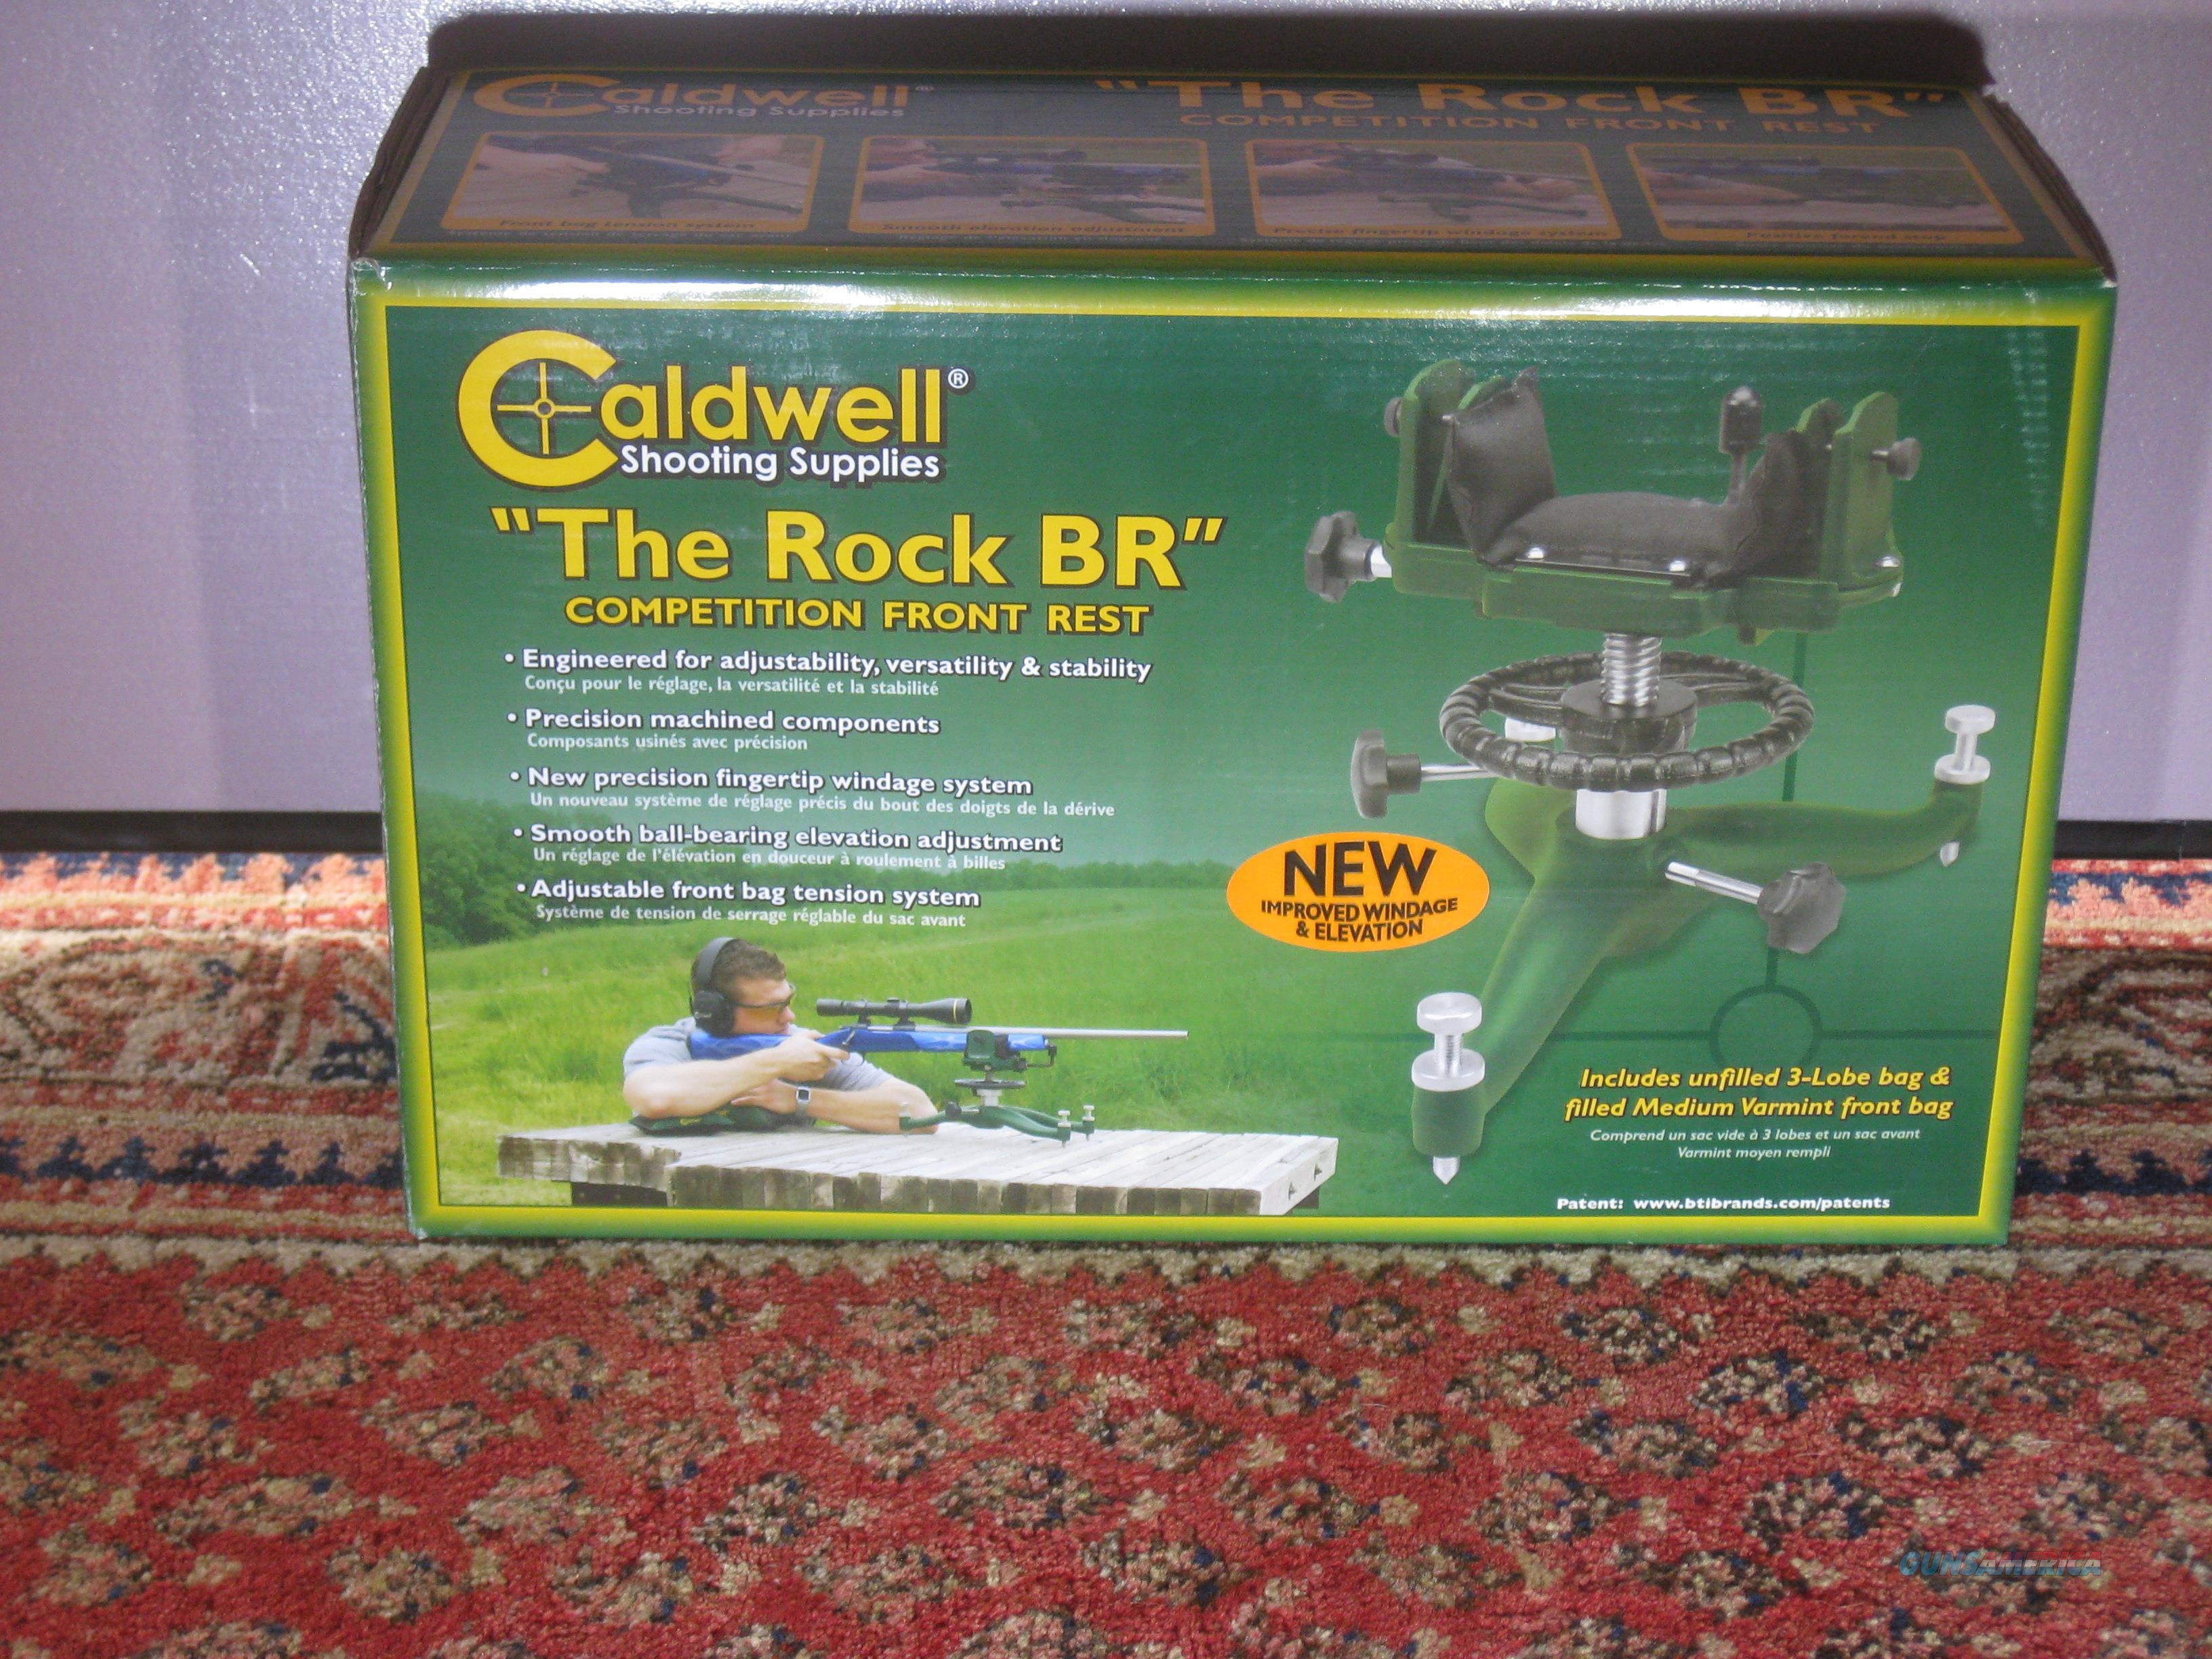 Caldwell 440907 Rock BR Competition Rifle Front Shooting Rest, 440-907 NIB  Non-Guns > Miscellaneous